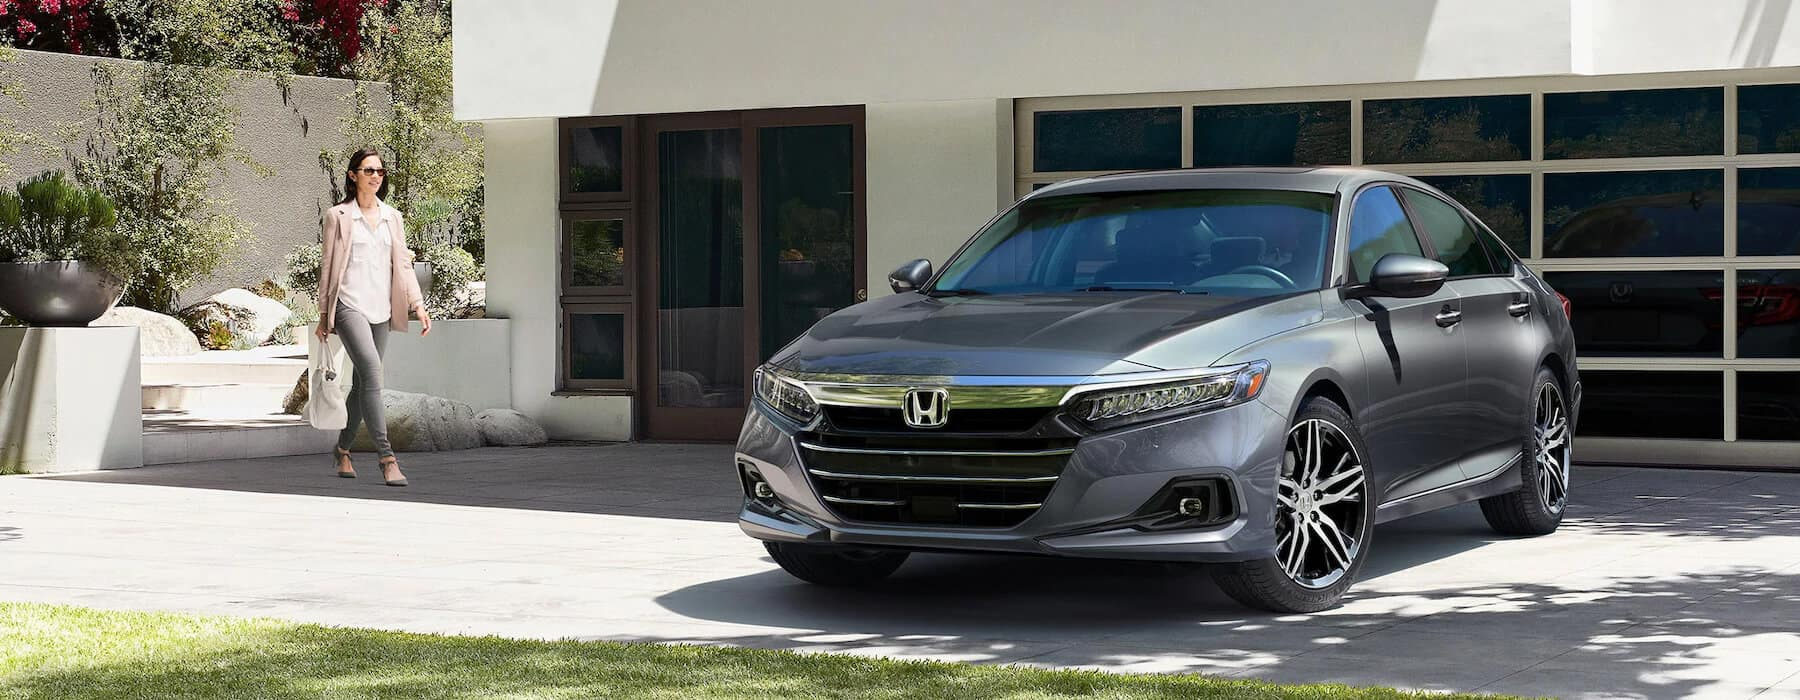 Sioux Falls Honda Accord Owner Questions Slider